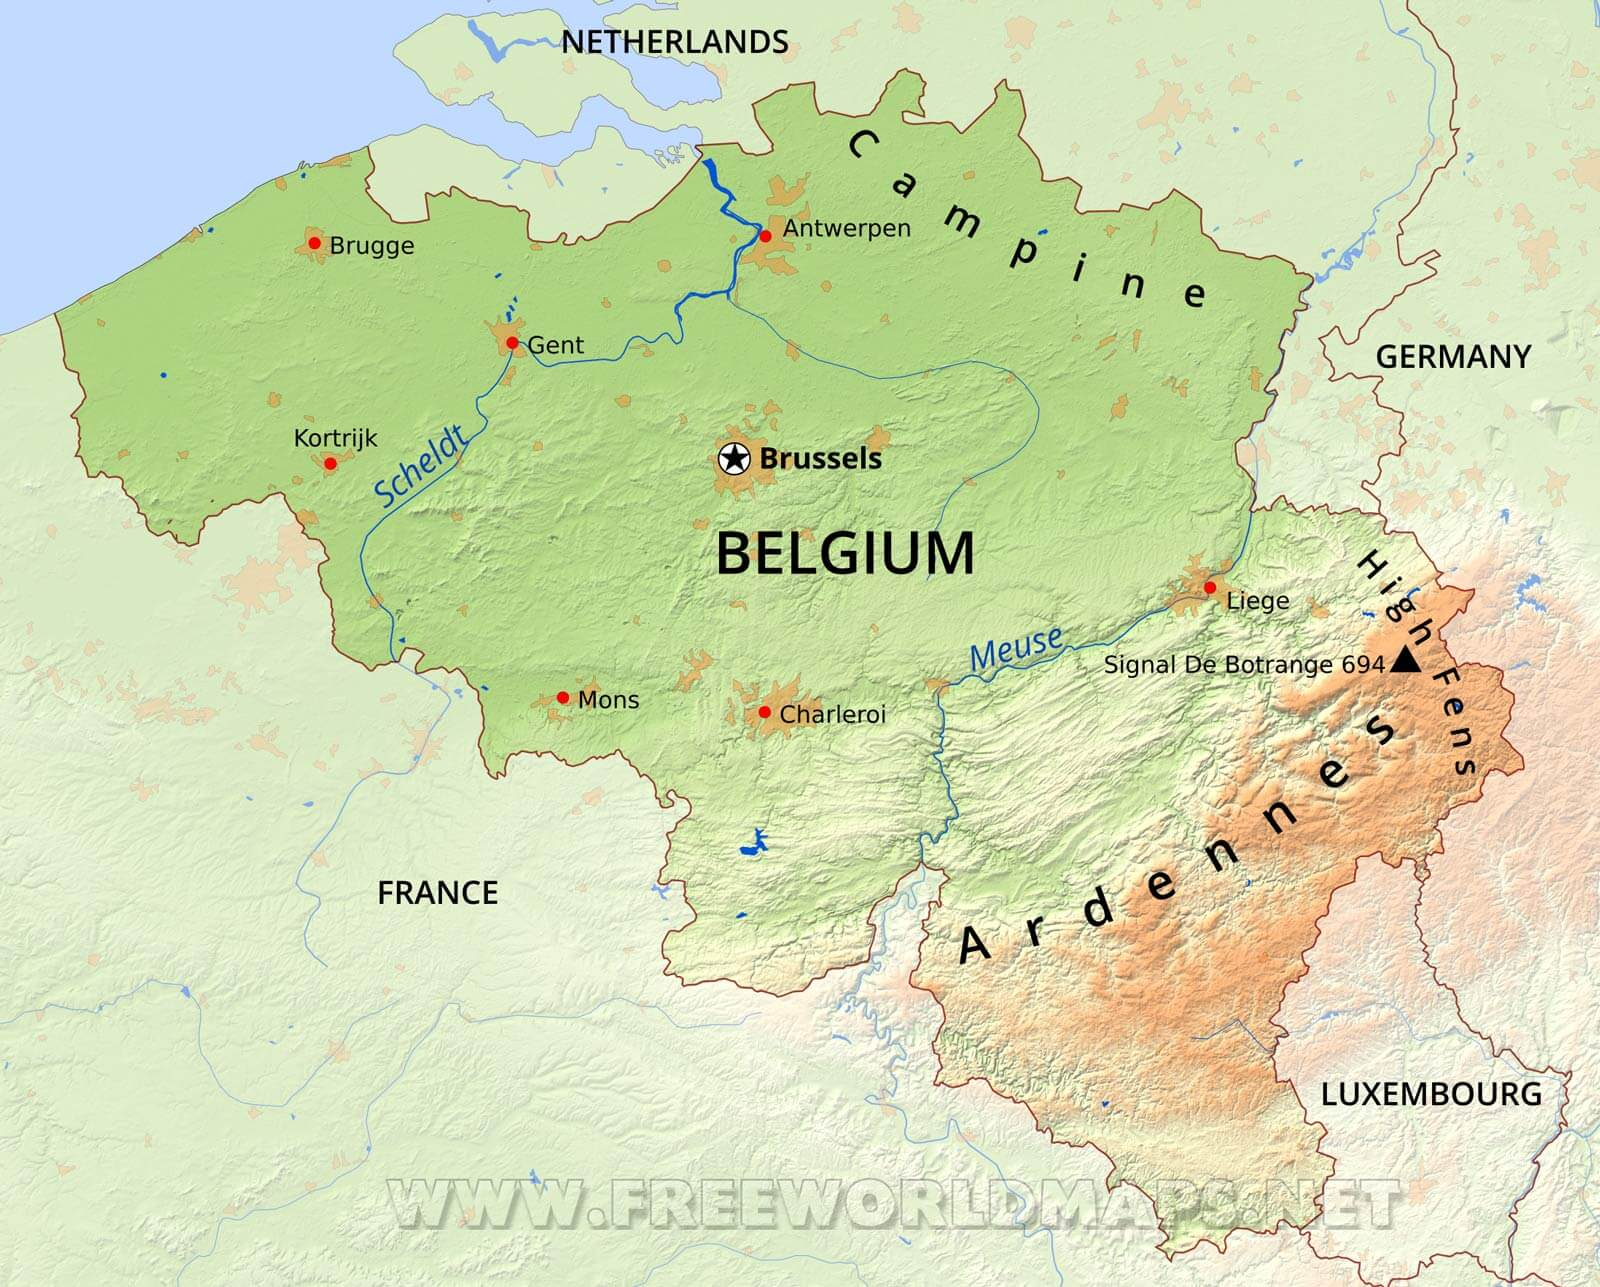 Belgium Physical Map on geographical map norway, geographical map hungary, physical map europe belgium, geographical map ireland, aerial photograph of belgium, physical characteristics of belgium, geographical map portugal, detailed map belgium, geographical map romania, geographical map denmark, geographical map finland, major rivers of belgium, geographical map germany,